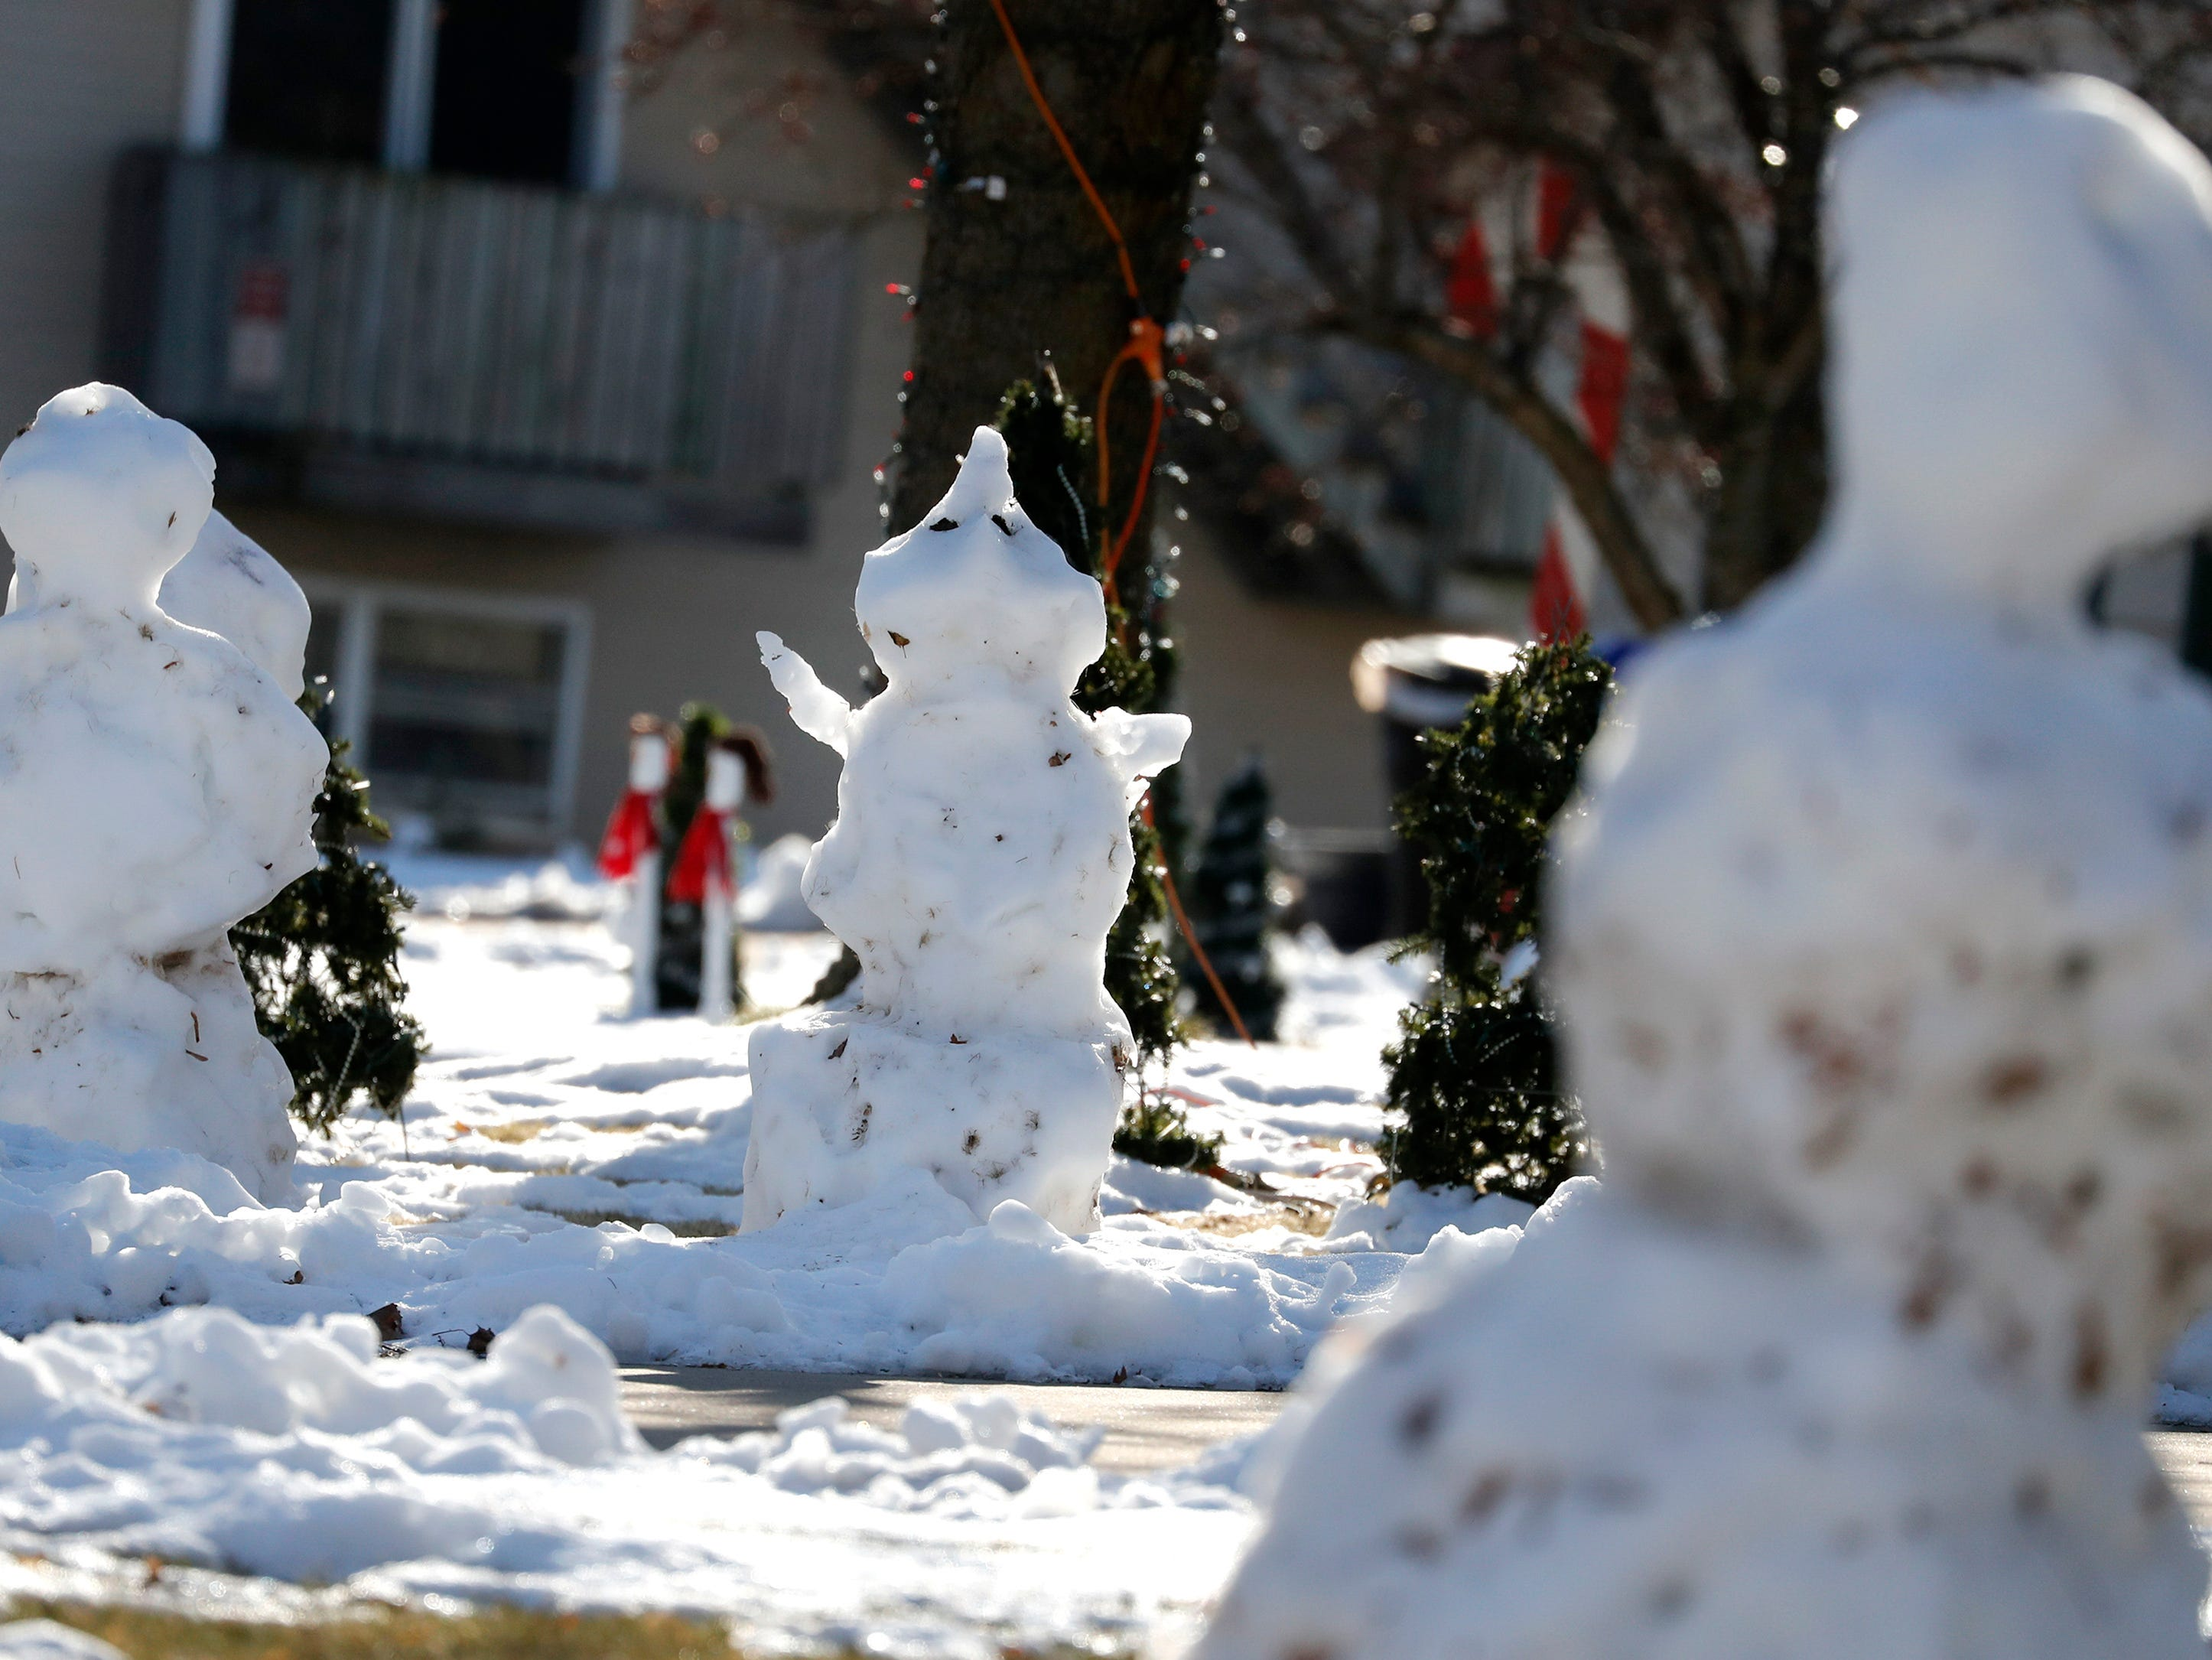 Snowmen slowly melt in the yards of homes on South Clara Street as temperatures rise Tuesday, Dec. 18, 2018, Appleton, Wis.Danny Damiani/USA TODAY NETWORK-Wisconsin